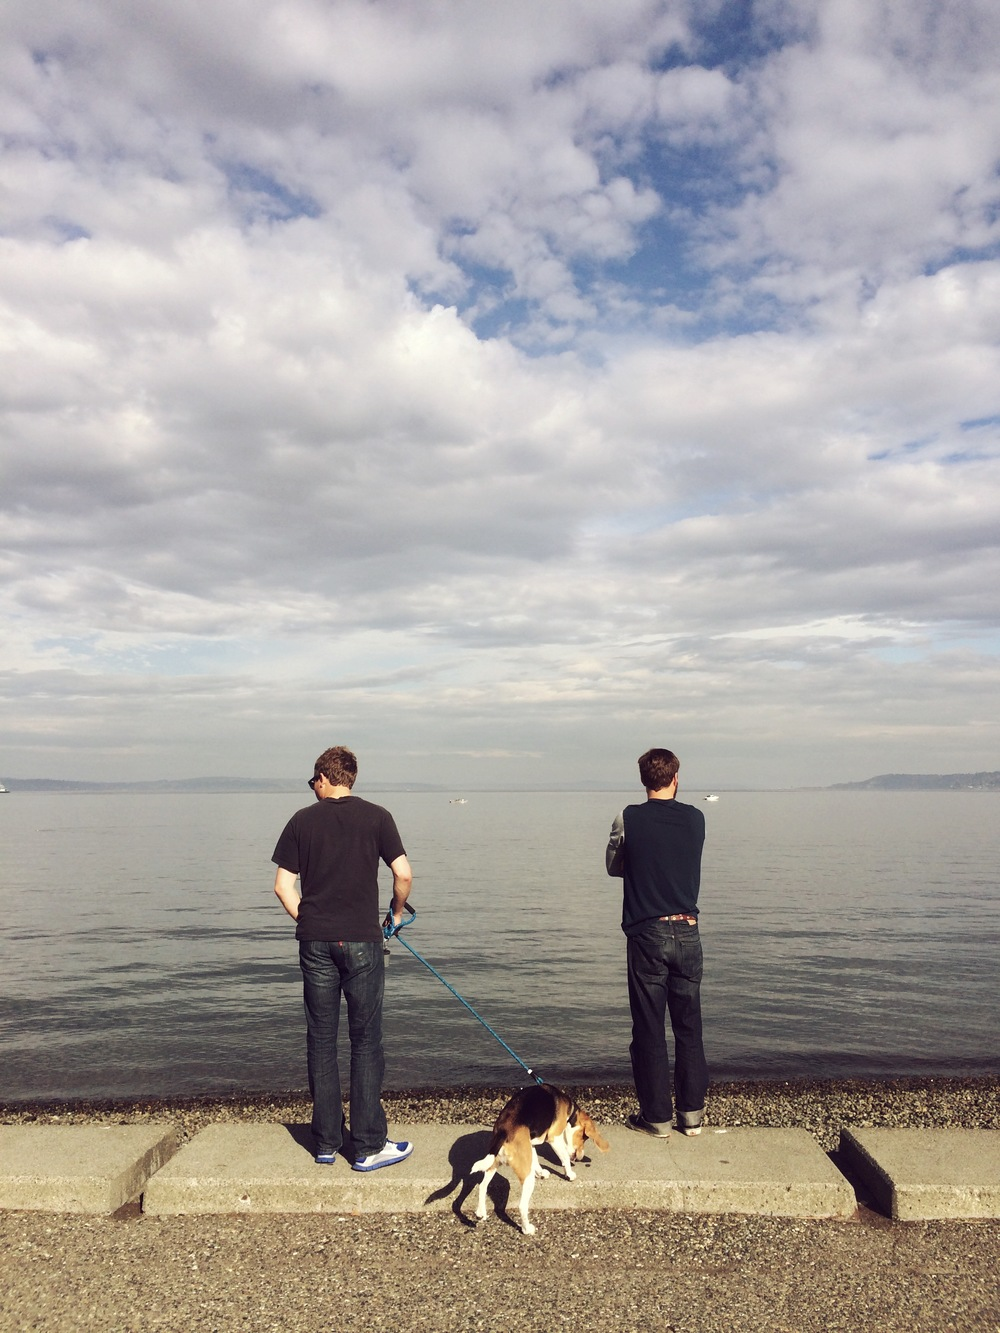 West Lake, Seattle with Brother Evan, Tucker Dog, and Manfriend Marshal